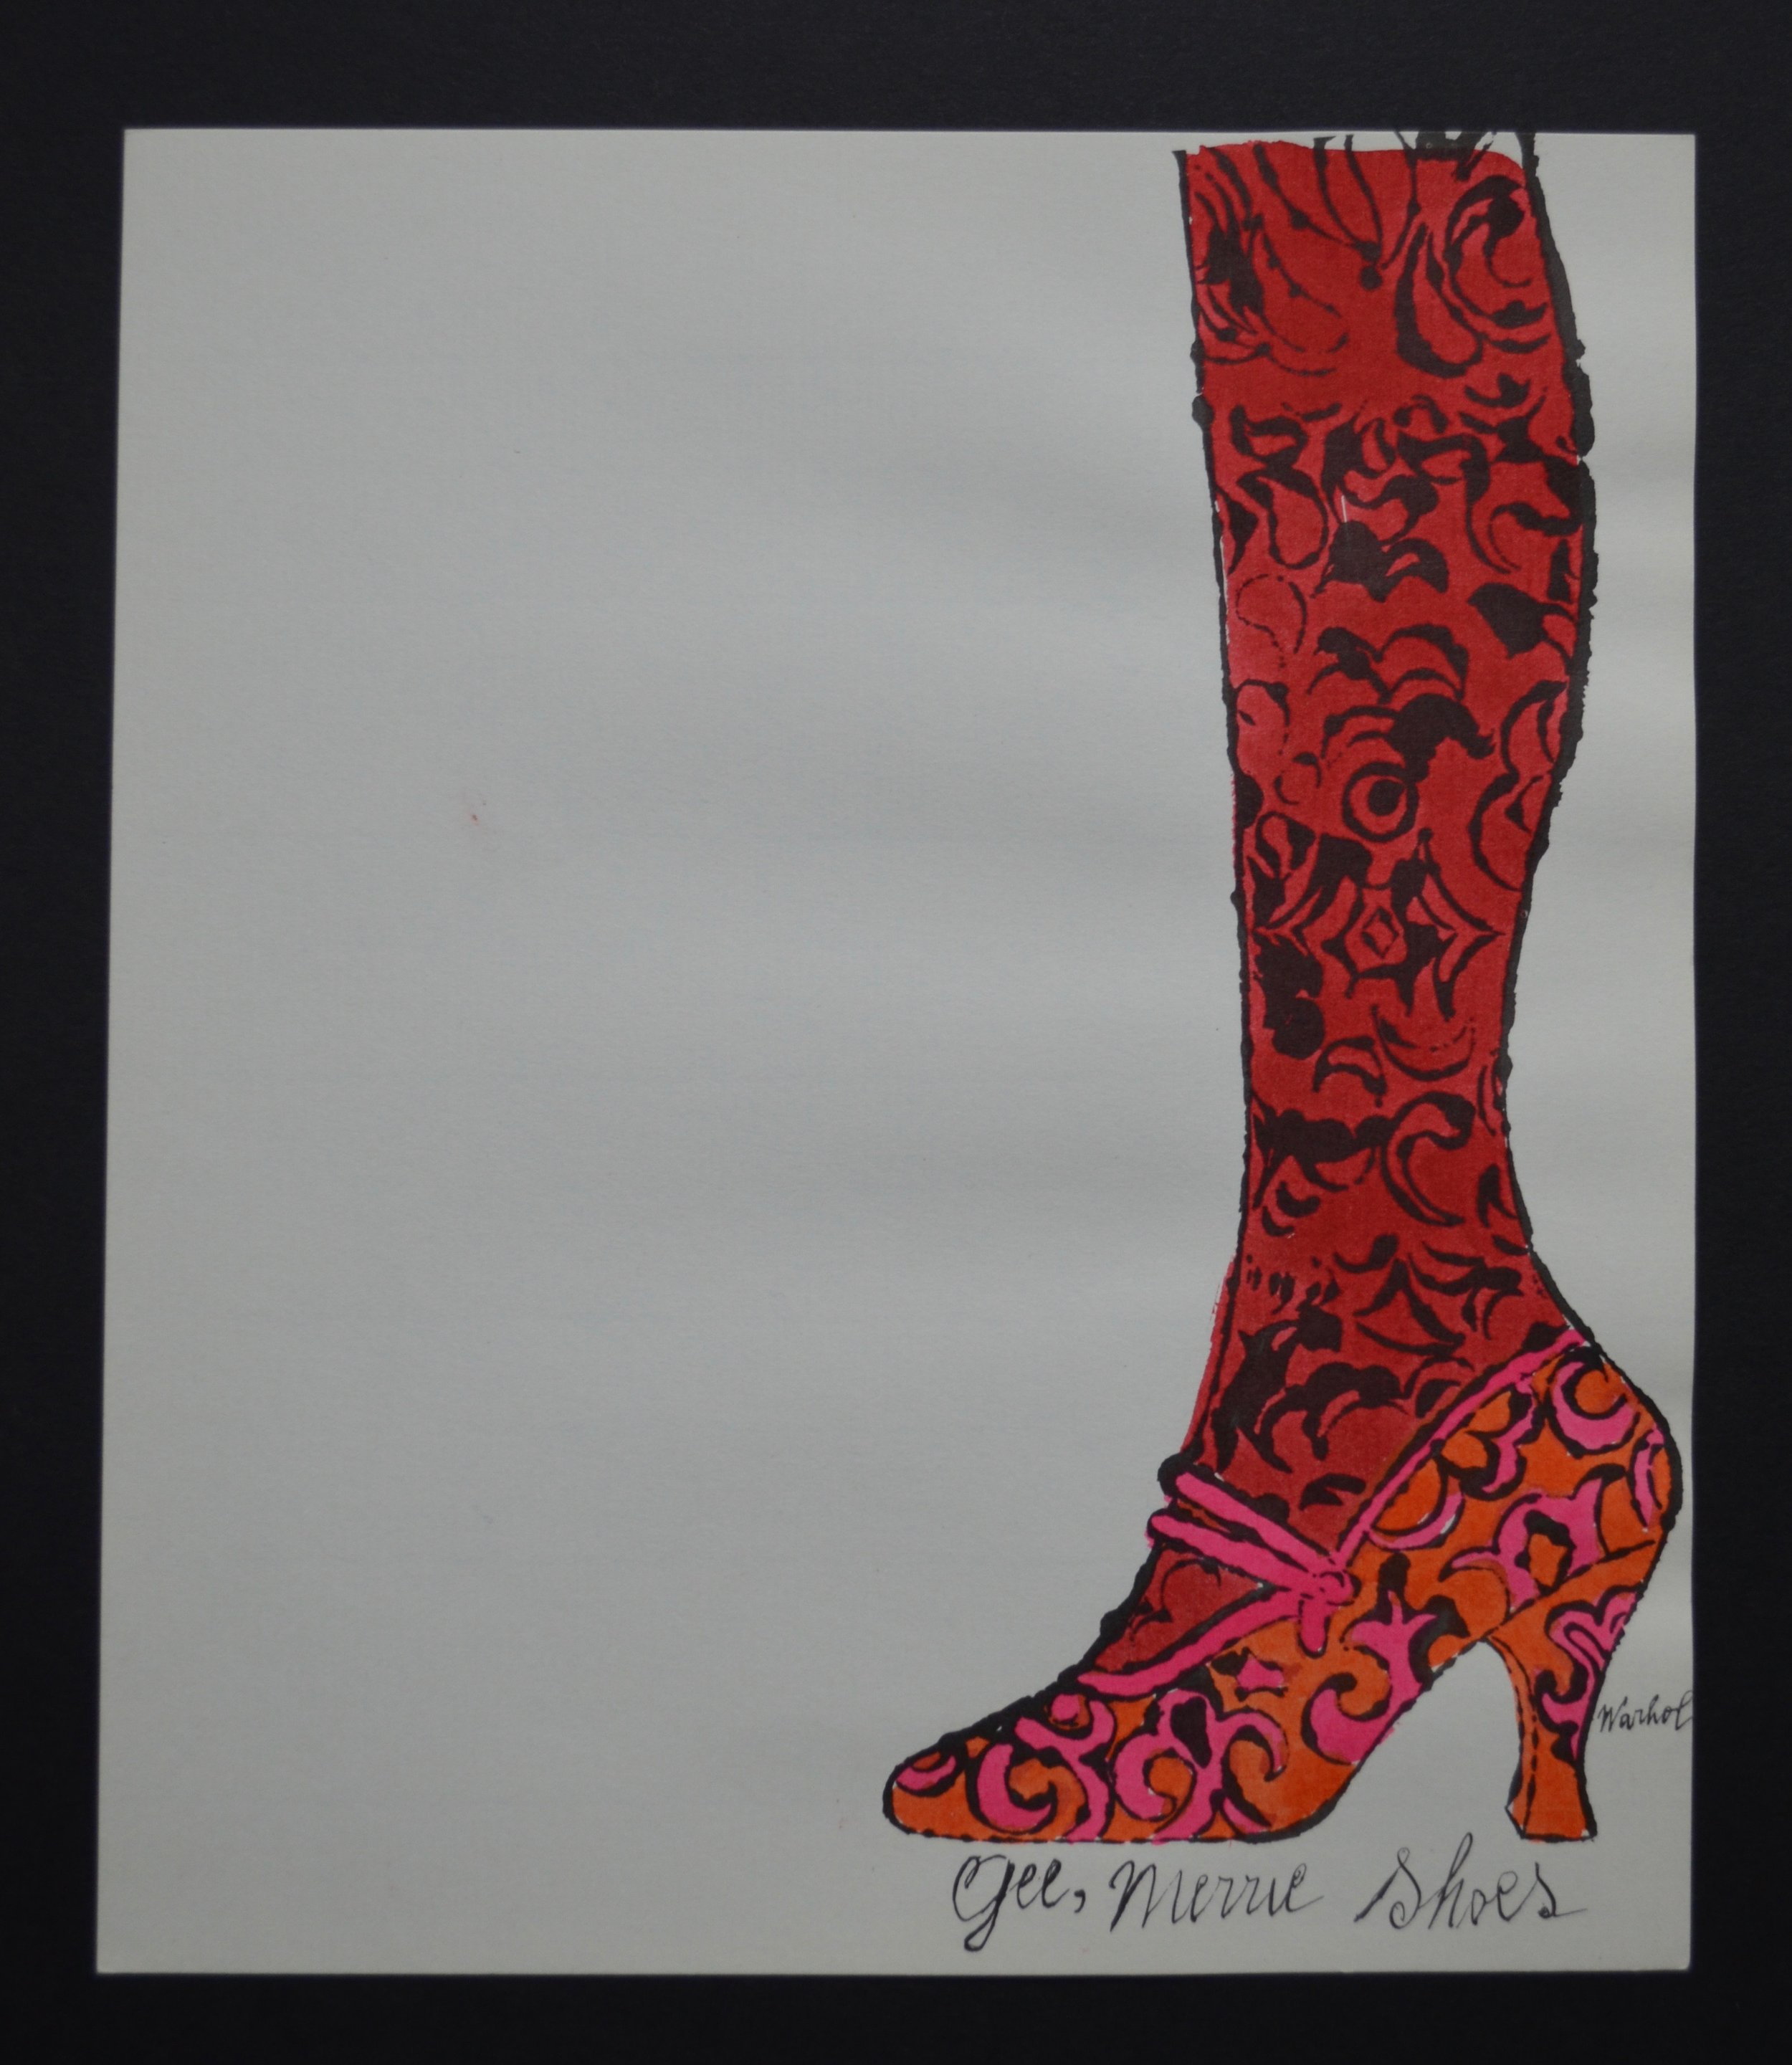 offset lithograph with hand coloring of a shoe with stocking by Andy Warhol, titled  Gee Merrie Shoe